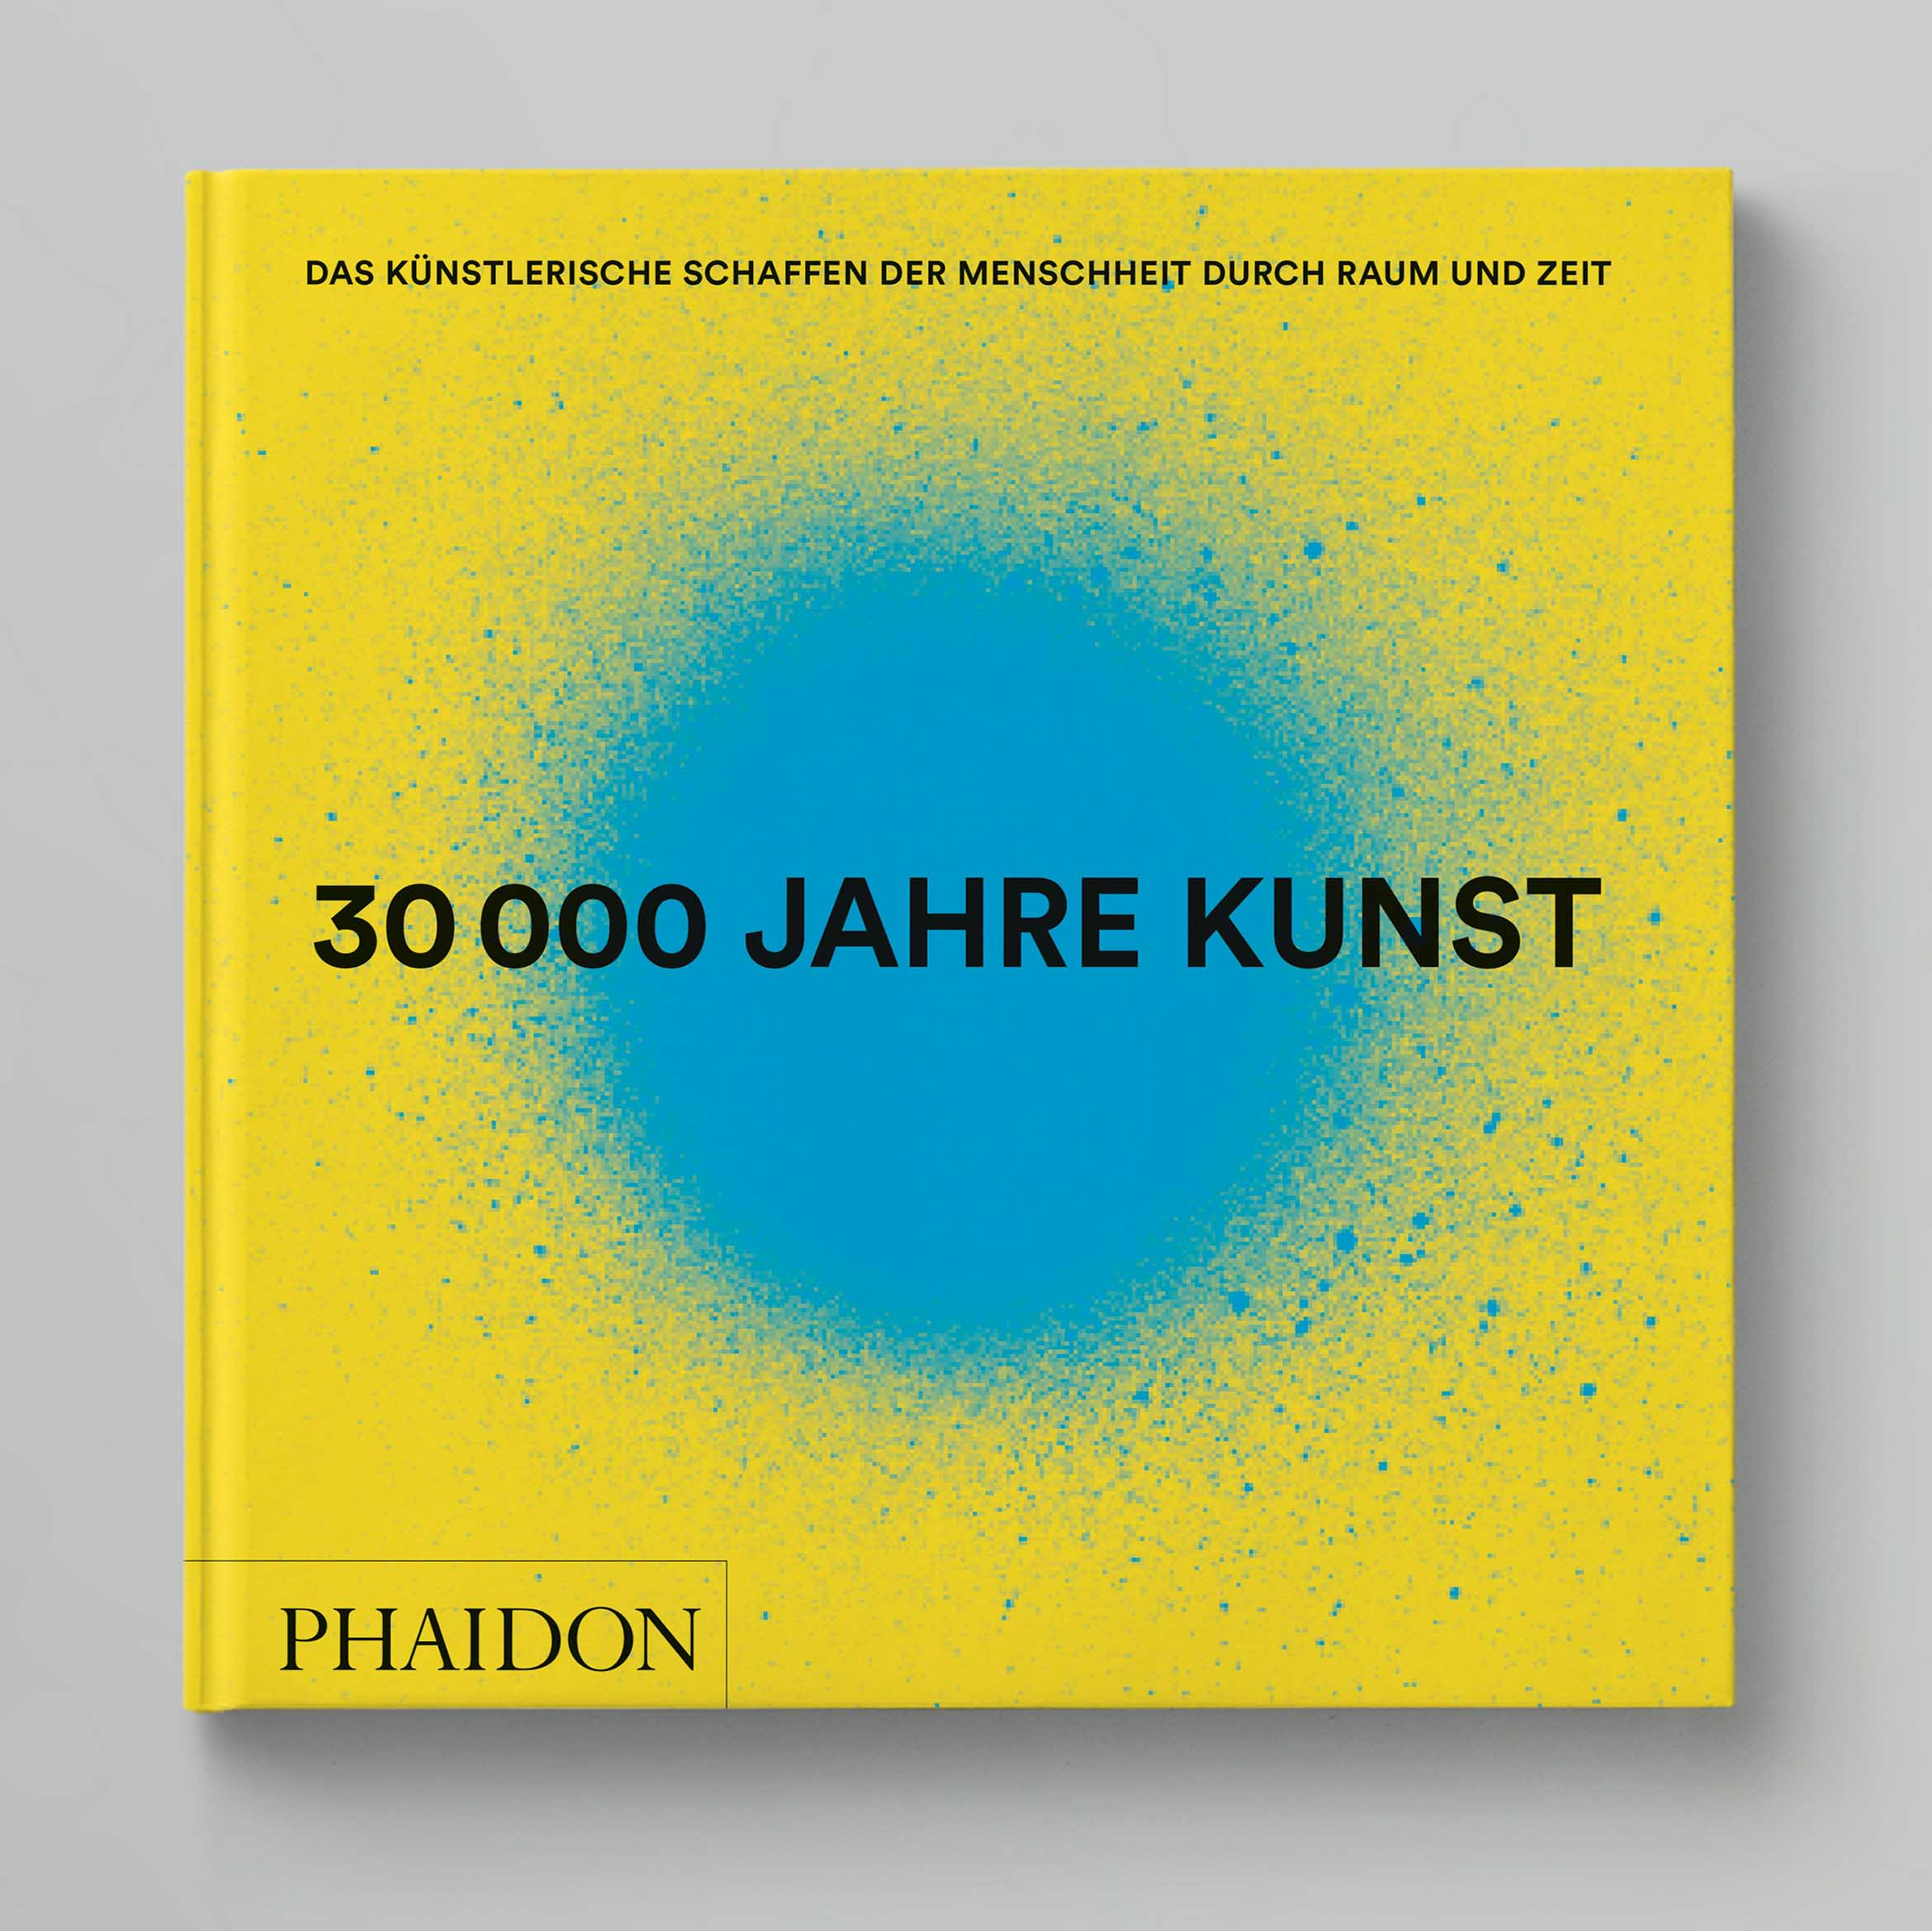 30000 Jahre Kunst Phaidon Cover